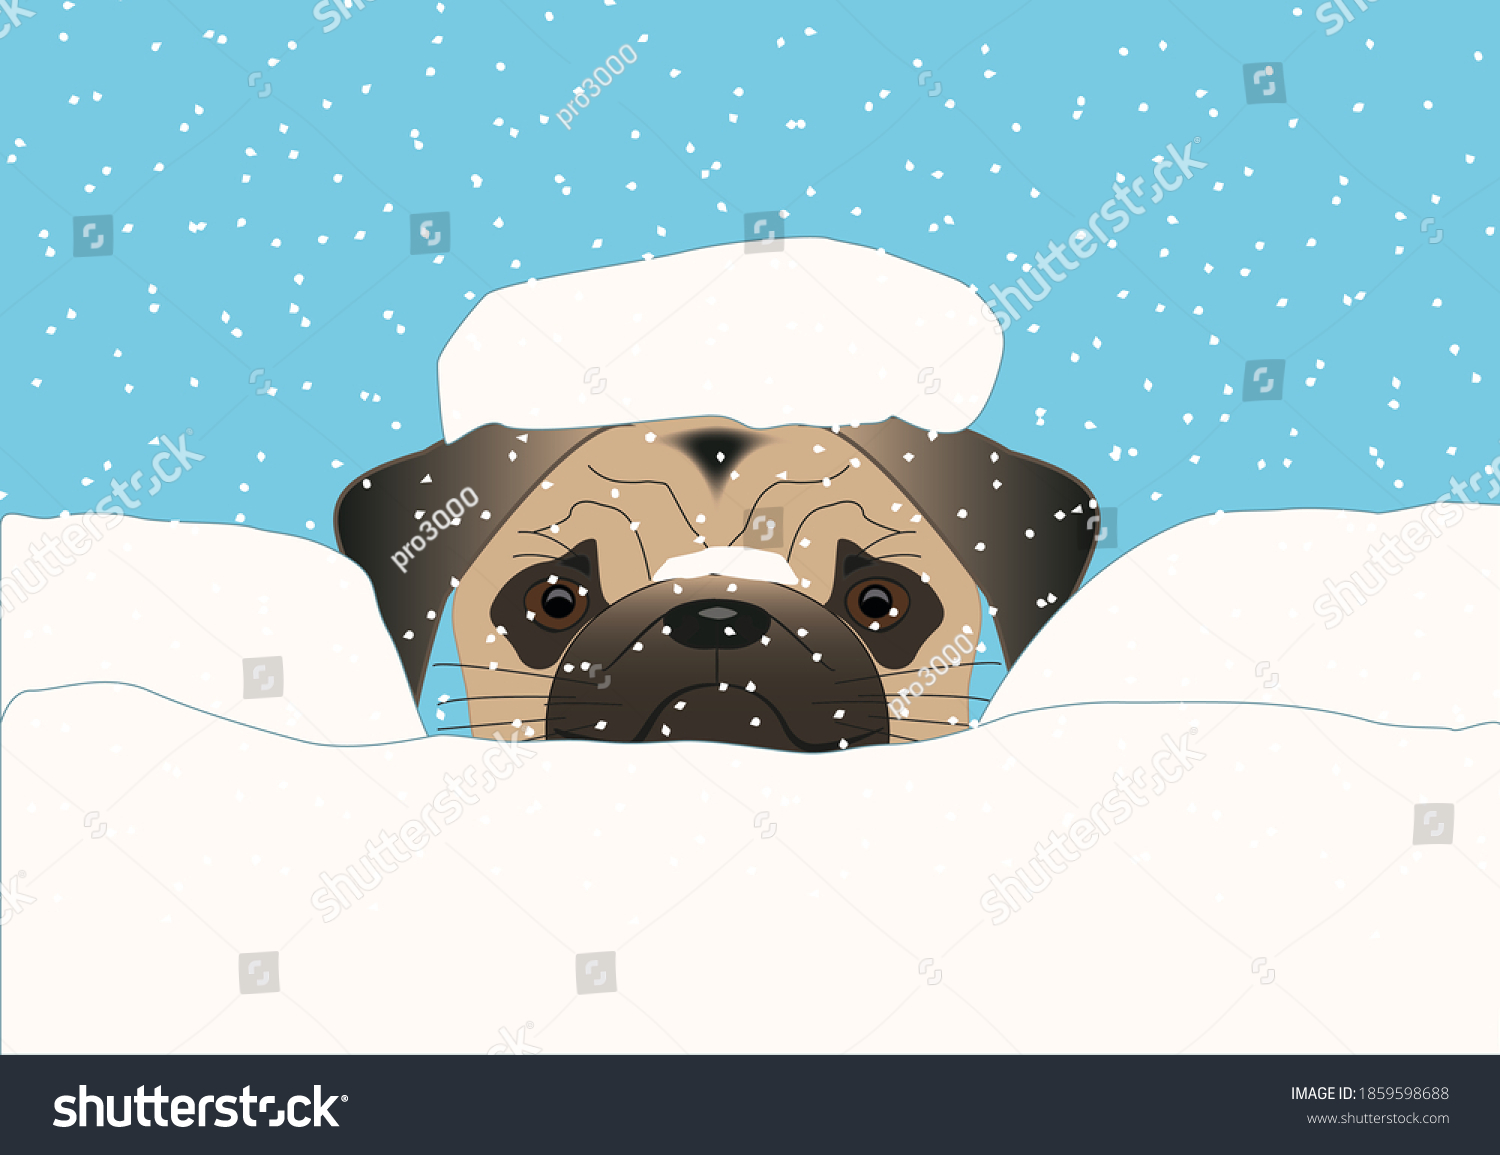 The illustration shows a pug who enjoys the snow.